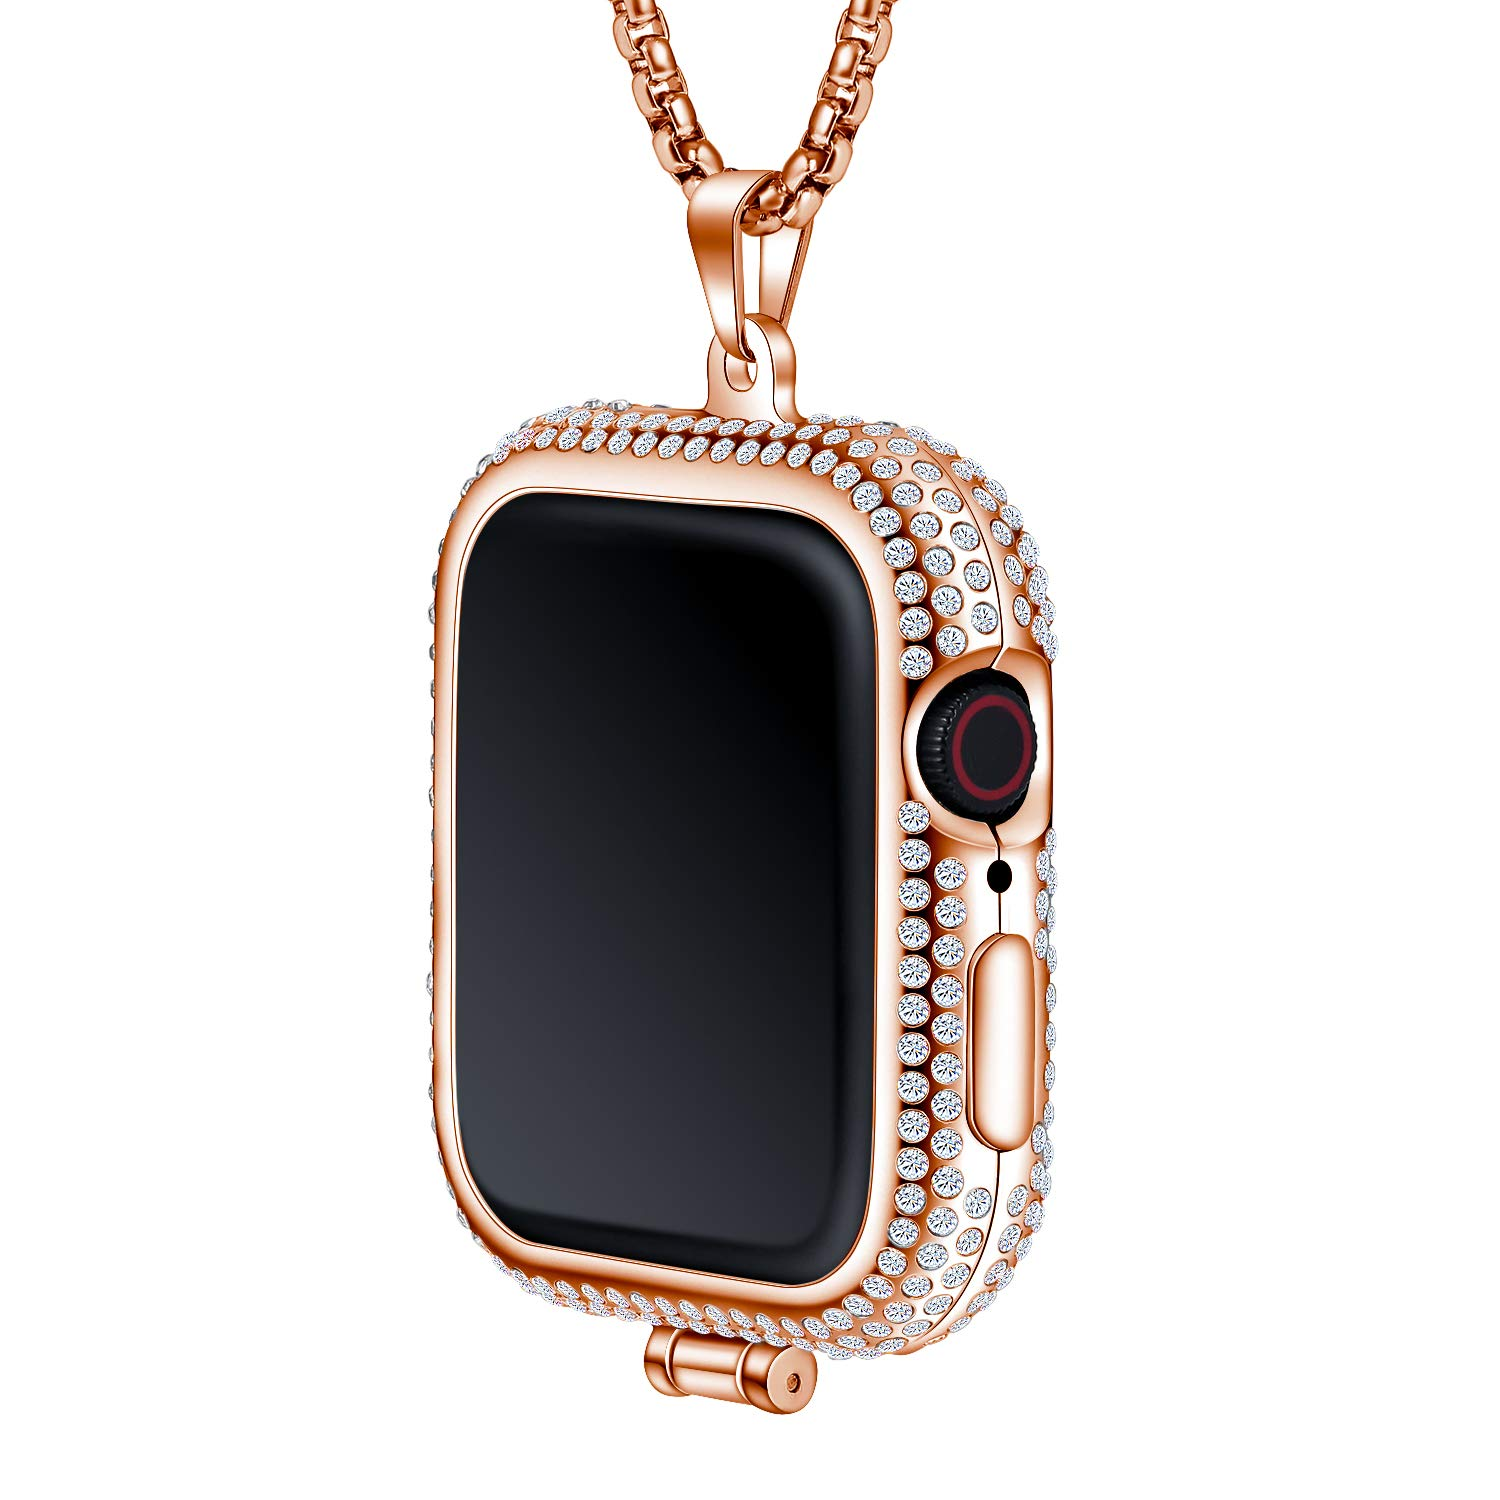 Callancity Metal Rhinestone Face Cover Plated Luxury Color Compatible for Apple Watch Pocket Watch Series 4 (Rose Gold, 44mm) by Callancity